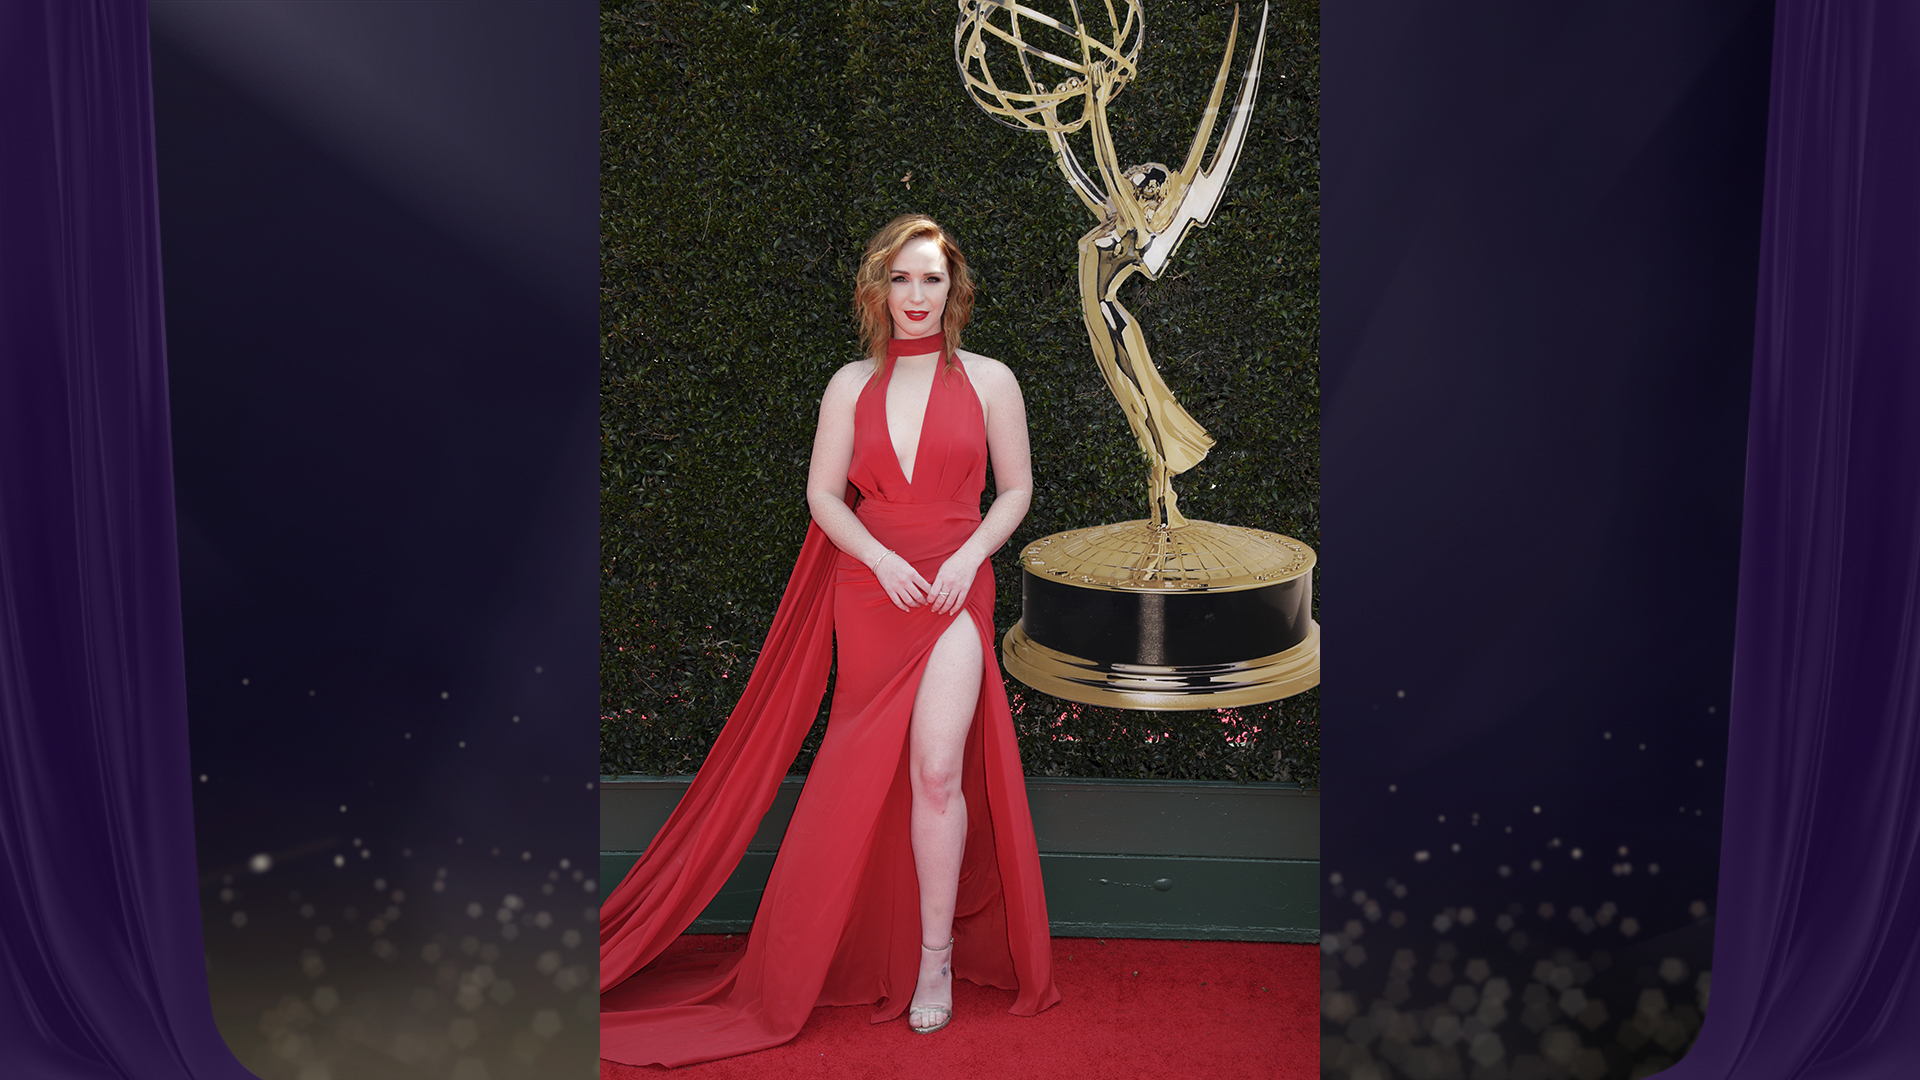 Y&R star Camryn Grimes, who's nominated for Outstanding Supporting Actress in a Drama Series, is giving us life in this sexy red dress with plunging neckline.